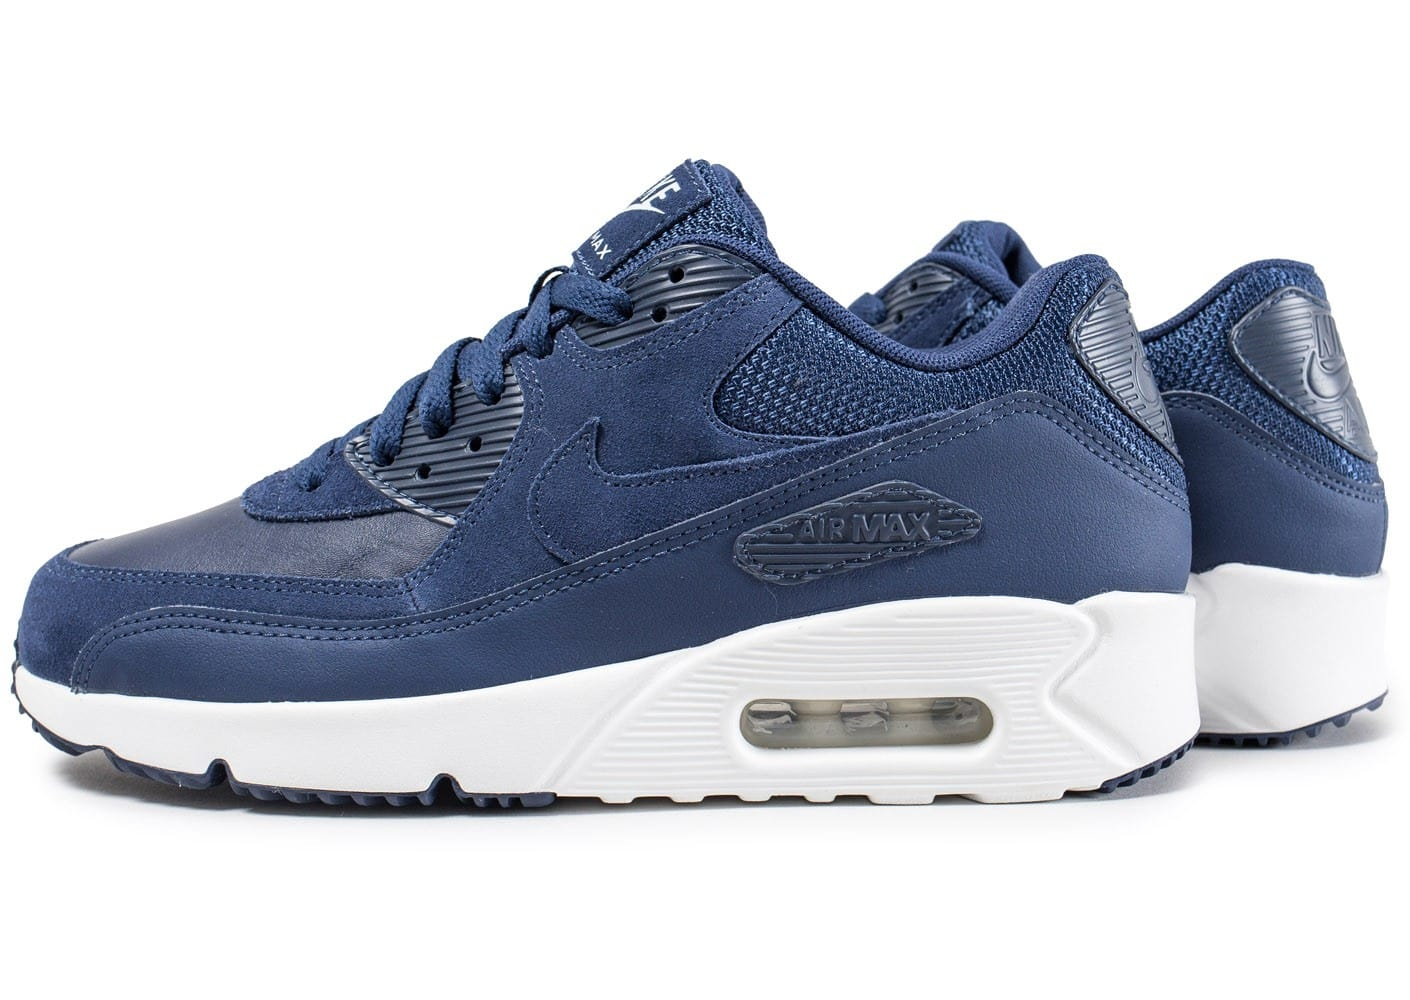 nike air max 90 bleu fonc chaussures homme chausport. Black Bedroom Furniture Sets. Home Design Ideas